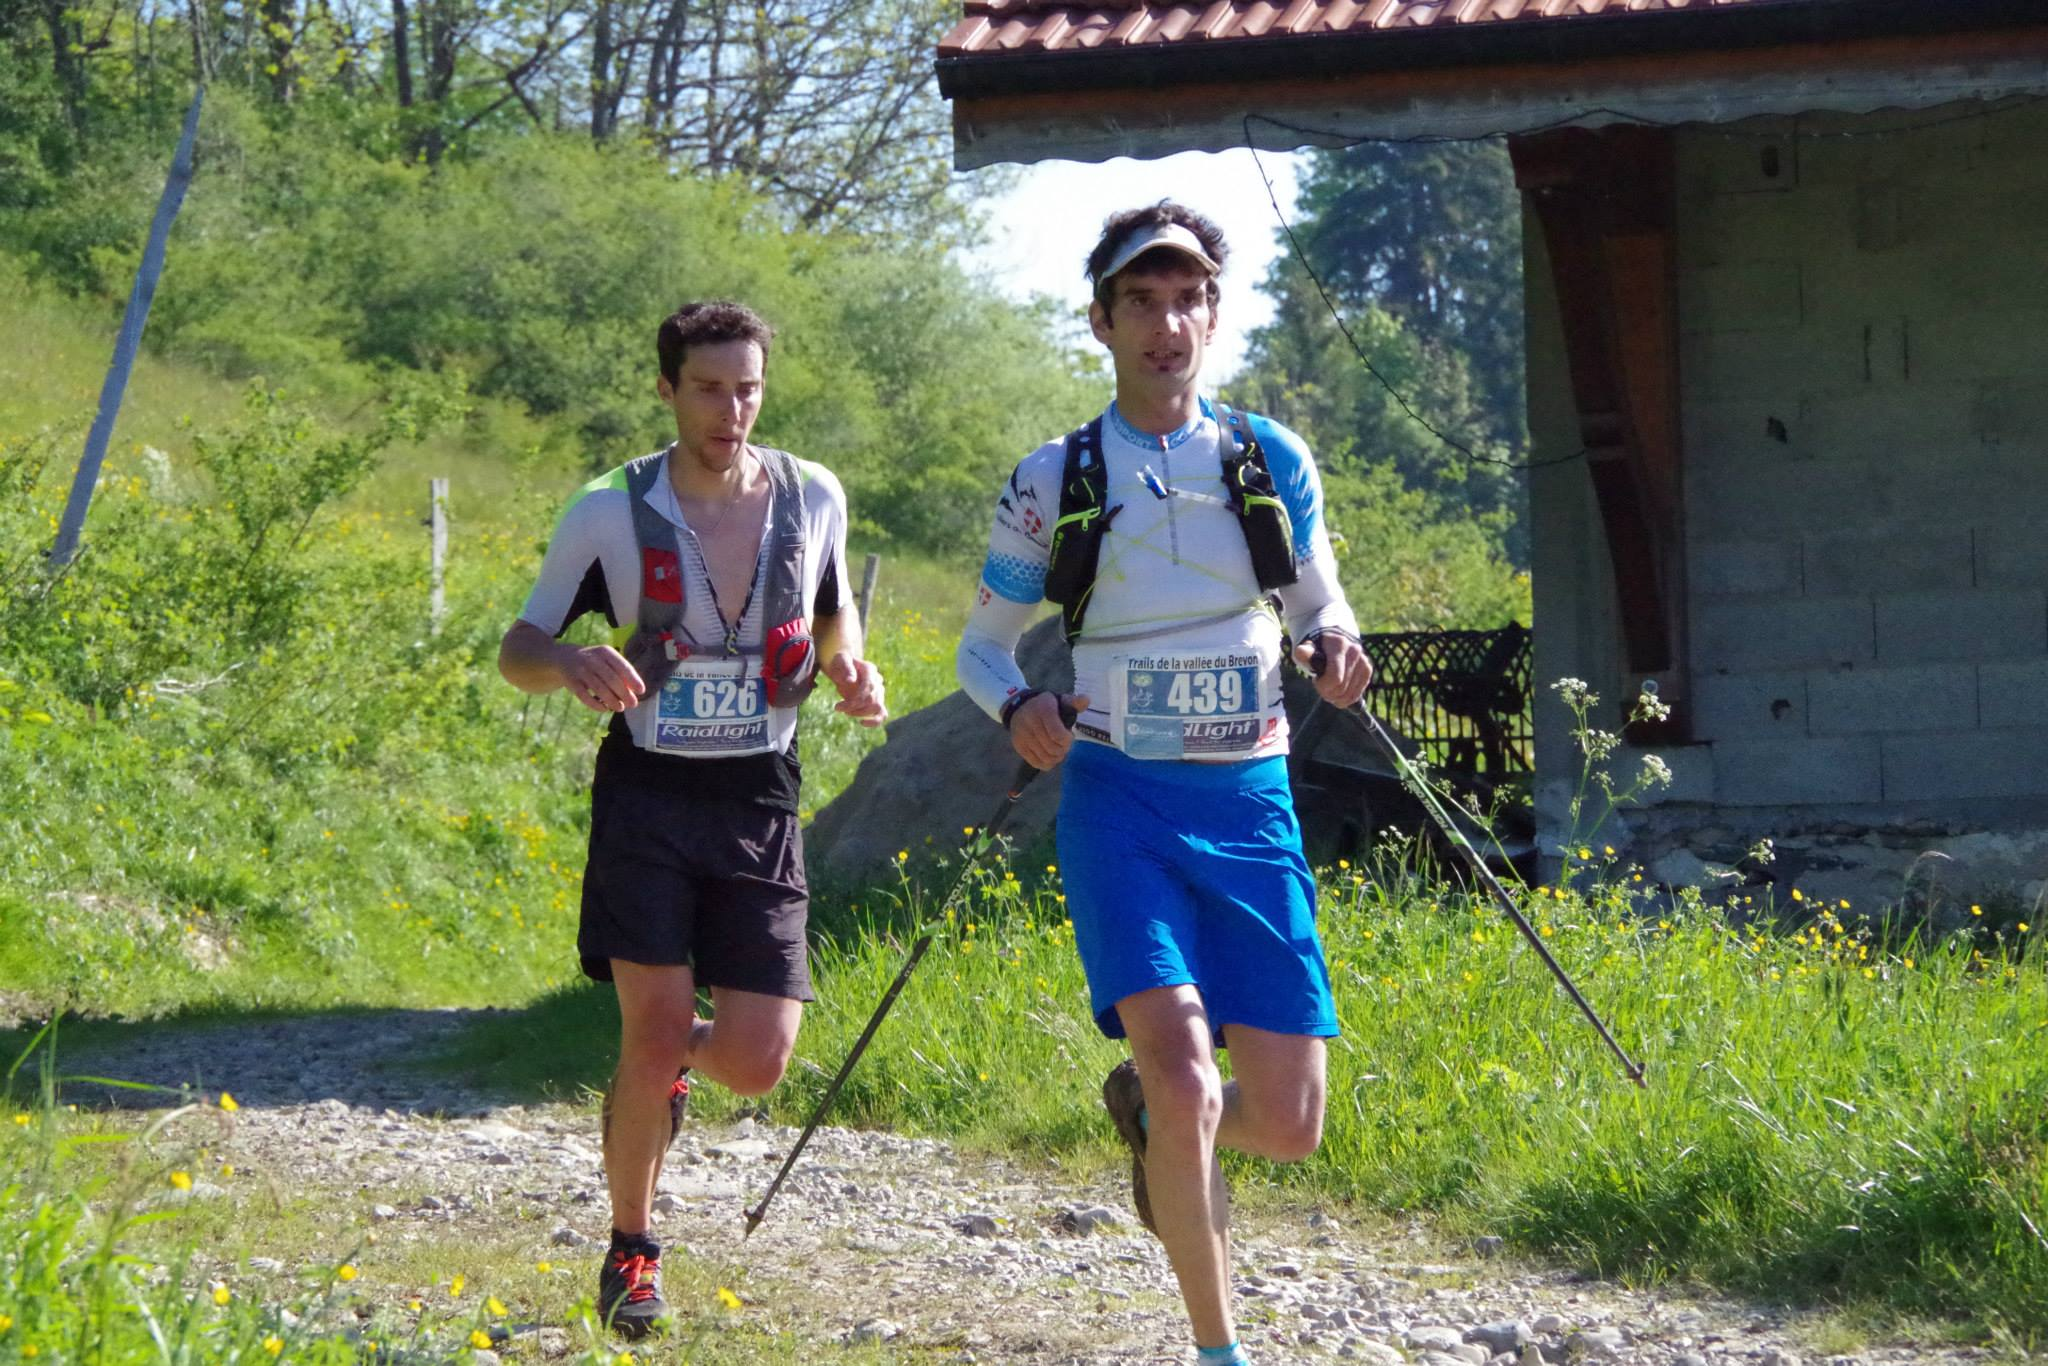 11096616 10153893146457782 2956246973162912503 o - RESULTATS, COMMENTAIRES, PHOTOS ET VIDEO DES TRAILS DE LA VALLEE DU BREVON / 24-05-15